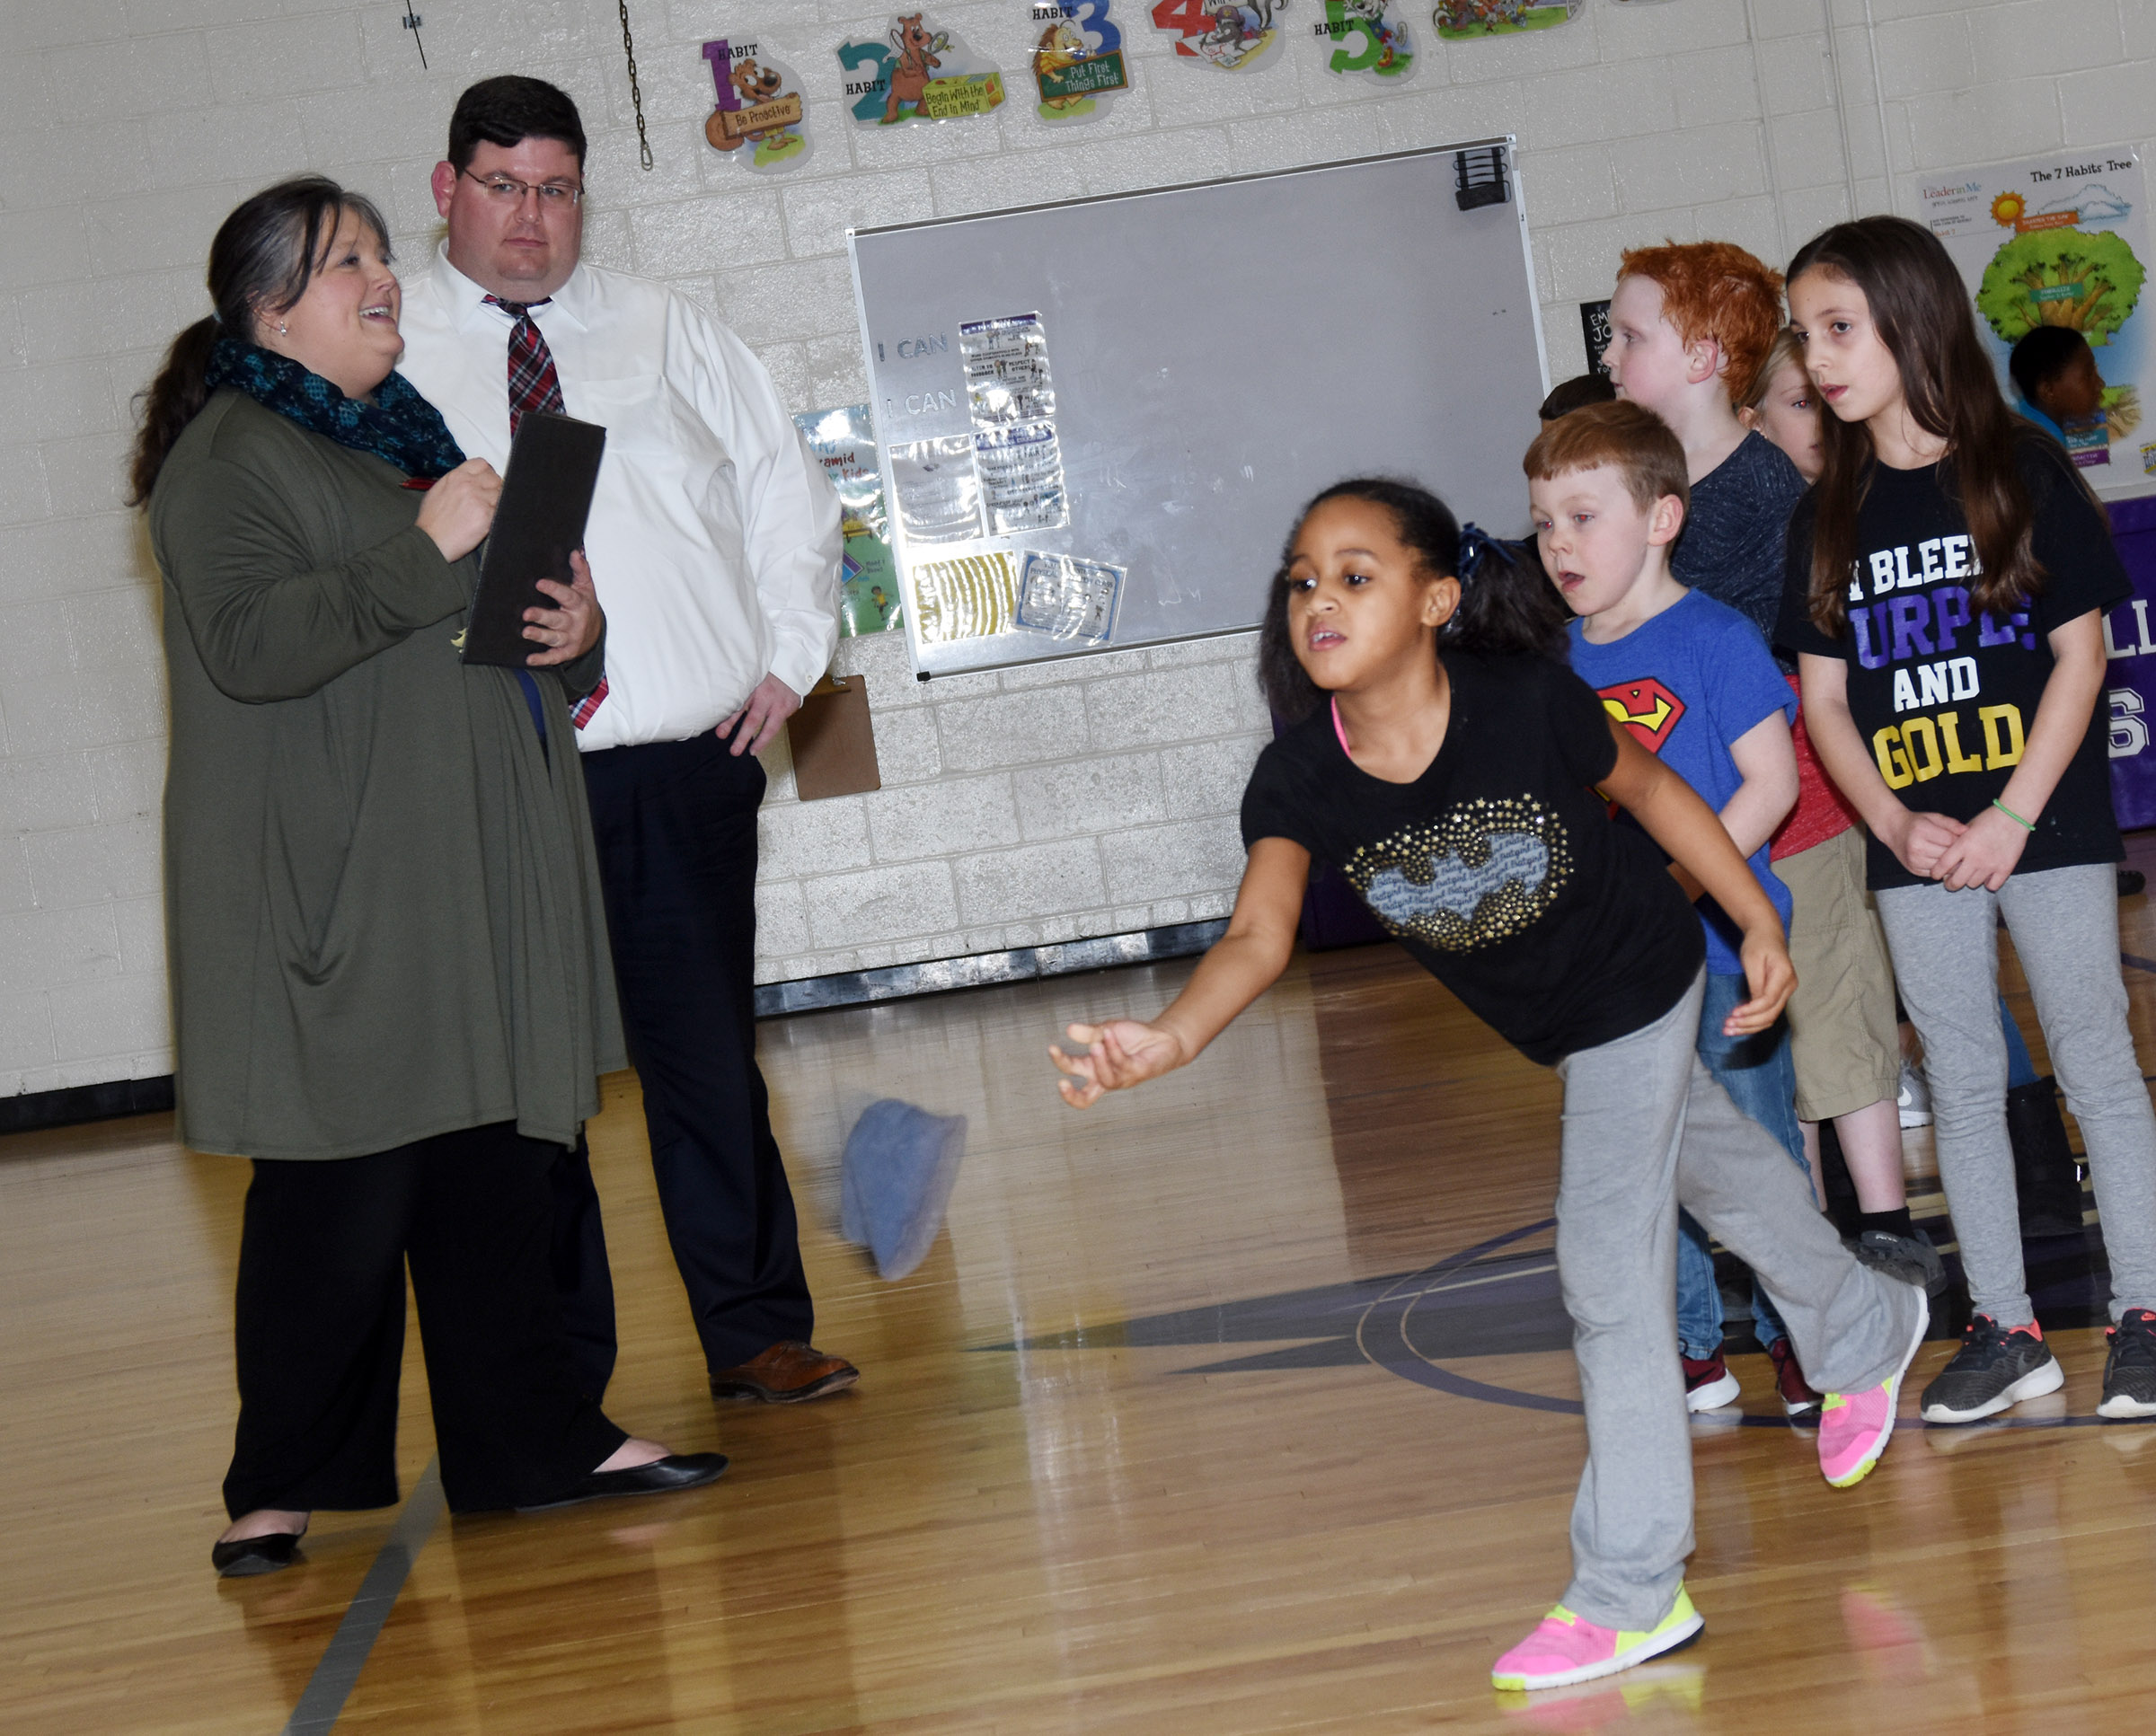 CES second-grader Kadance Ford throws a bean bag, as Campbellsville/Taylor County Chamber of Commerce Board members Latasha Bell and Jeremy Wood watch.